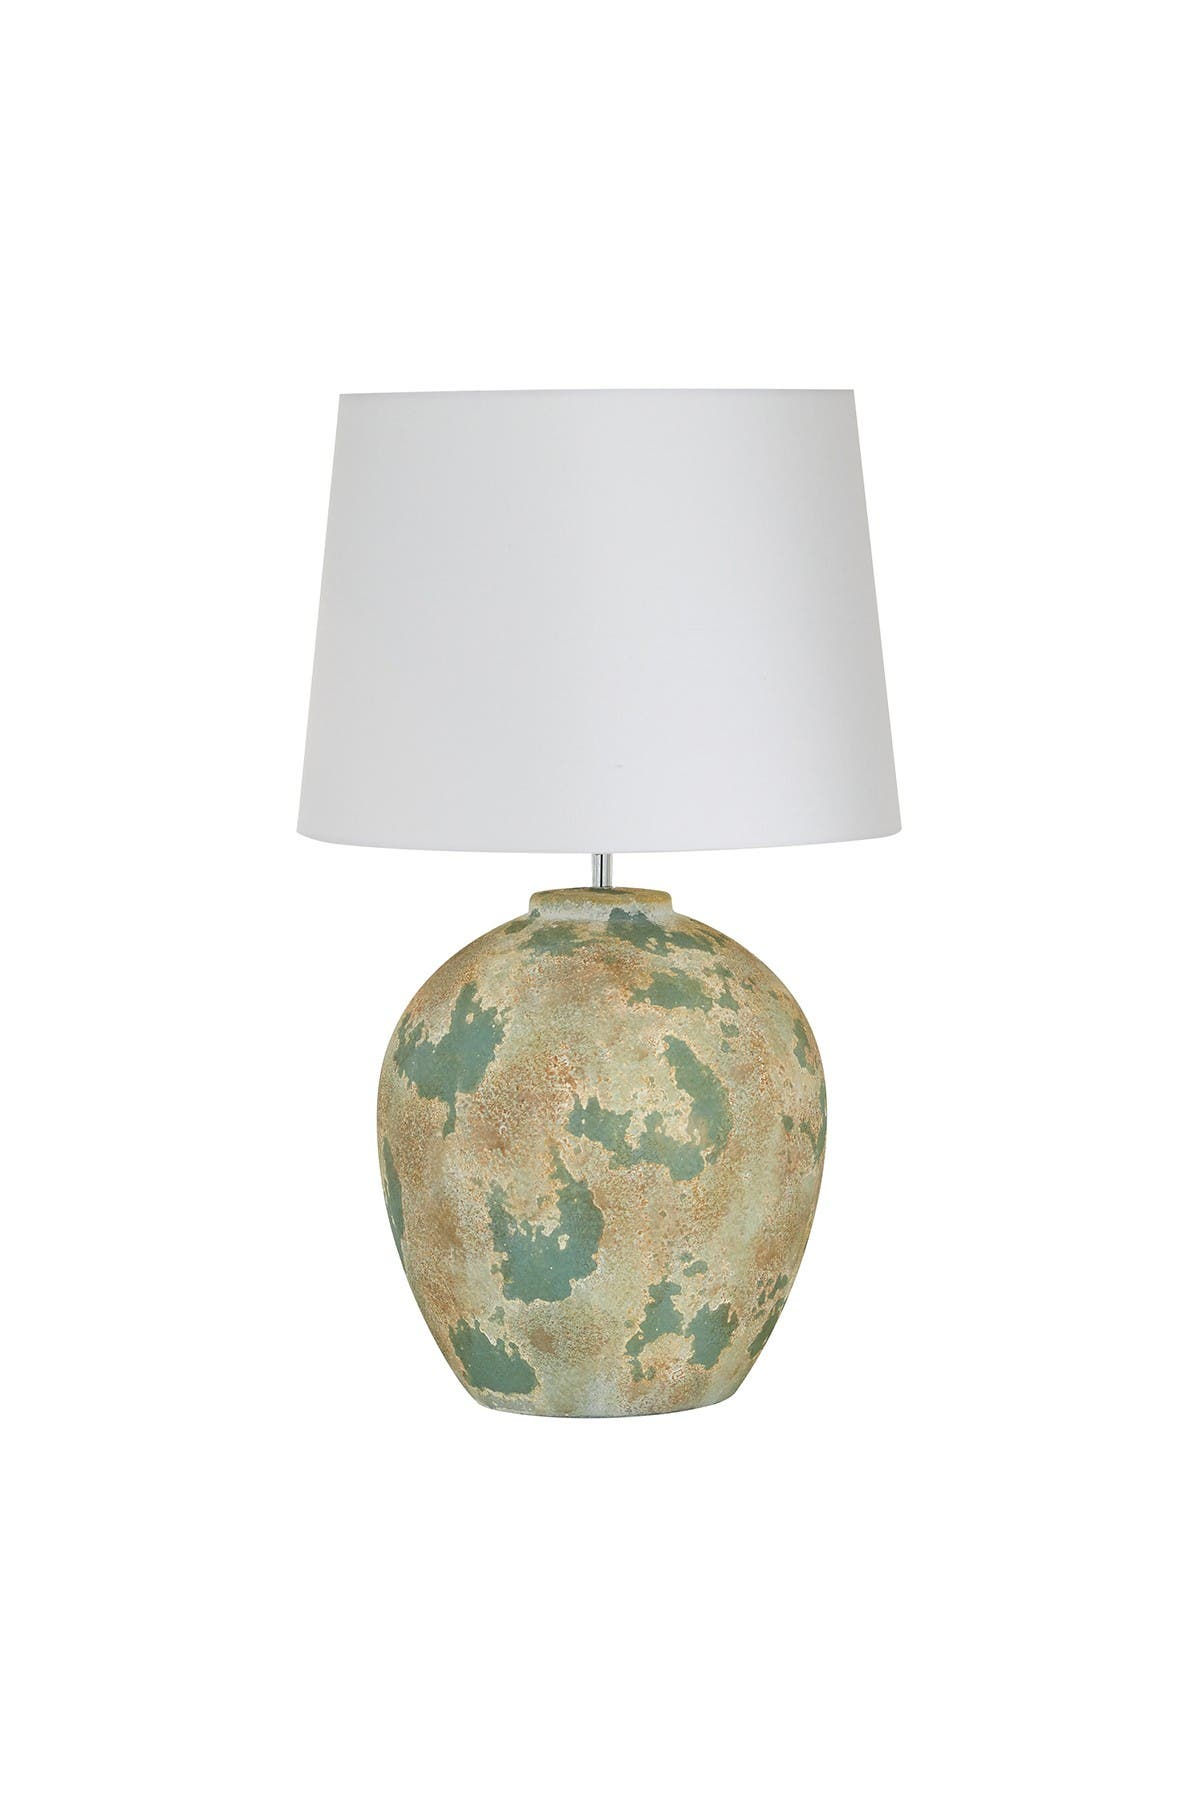 Willow Row Large Round Beige And Sage Green Textured Ceramic Table Lamp With White Shade - 16.5\\\